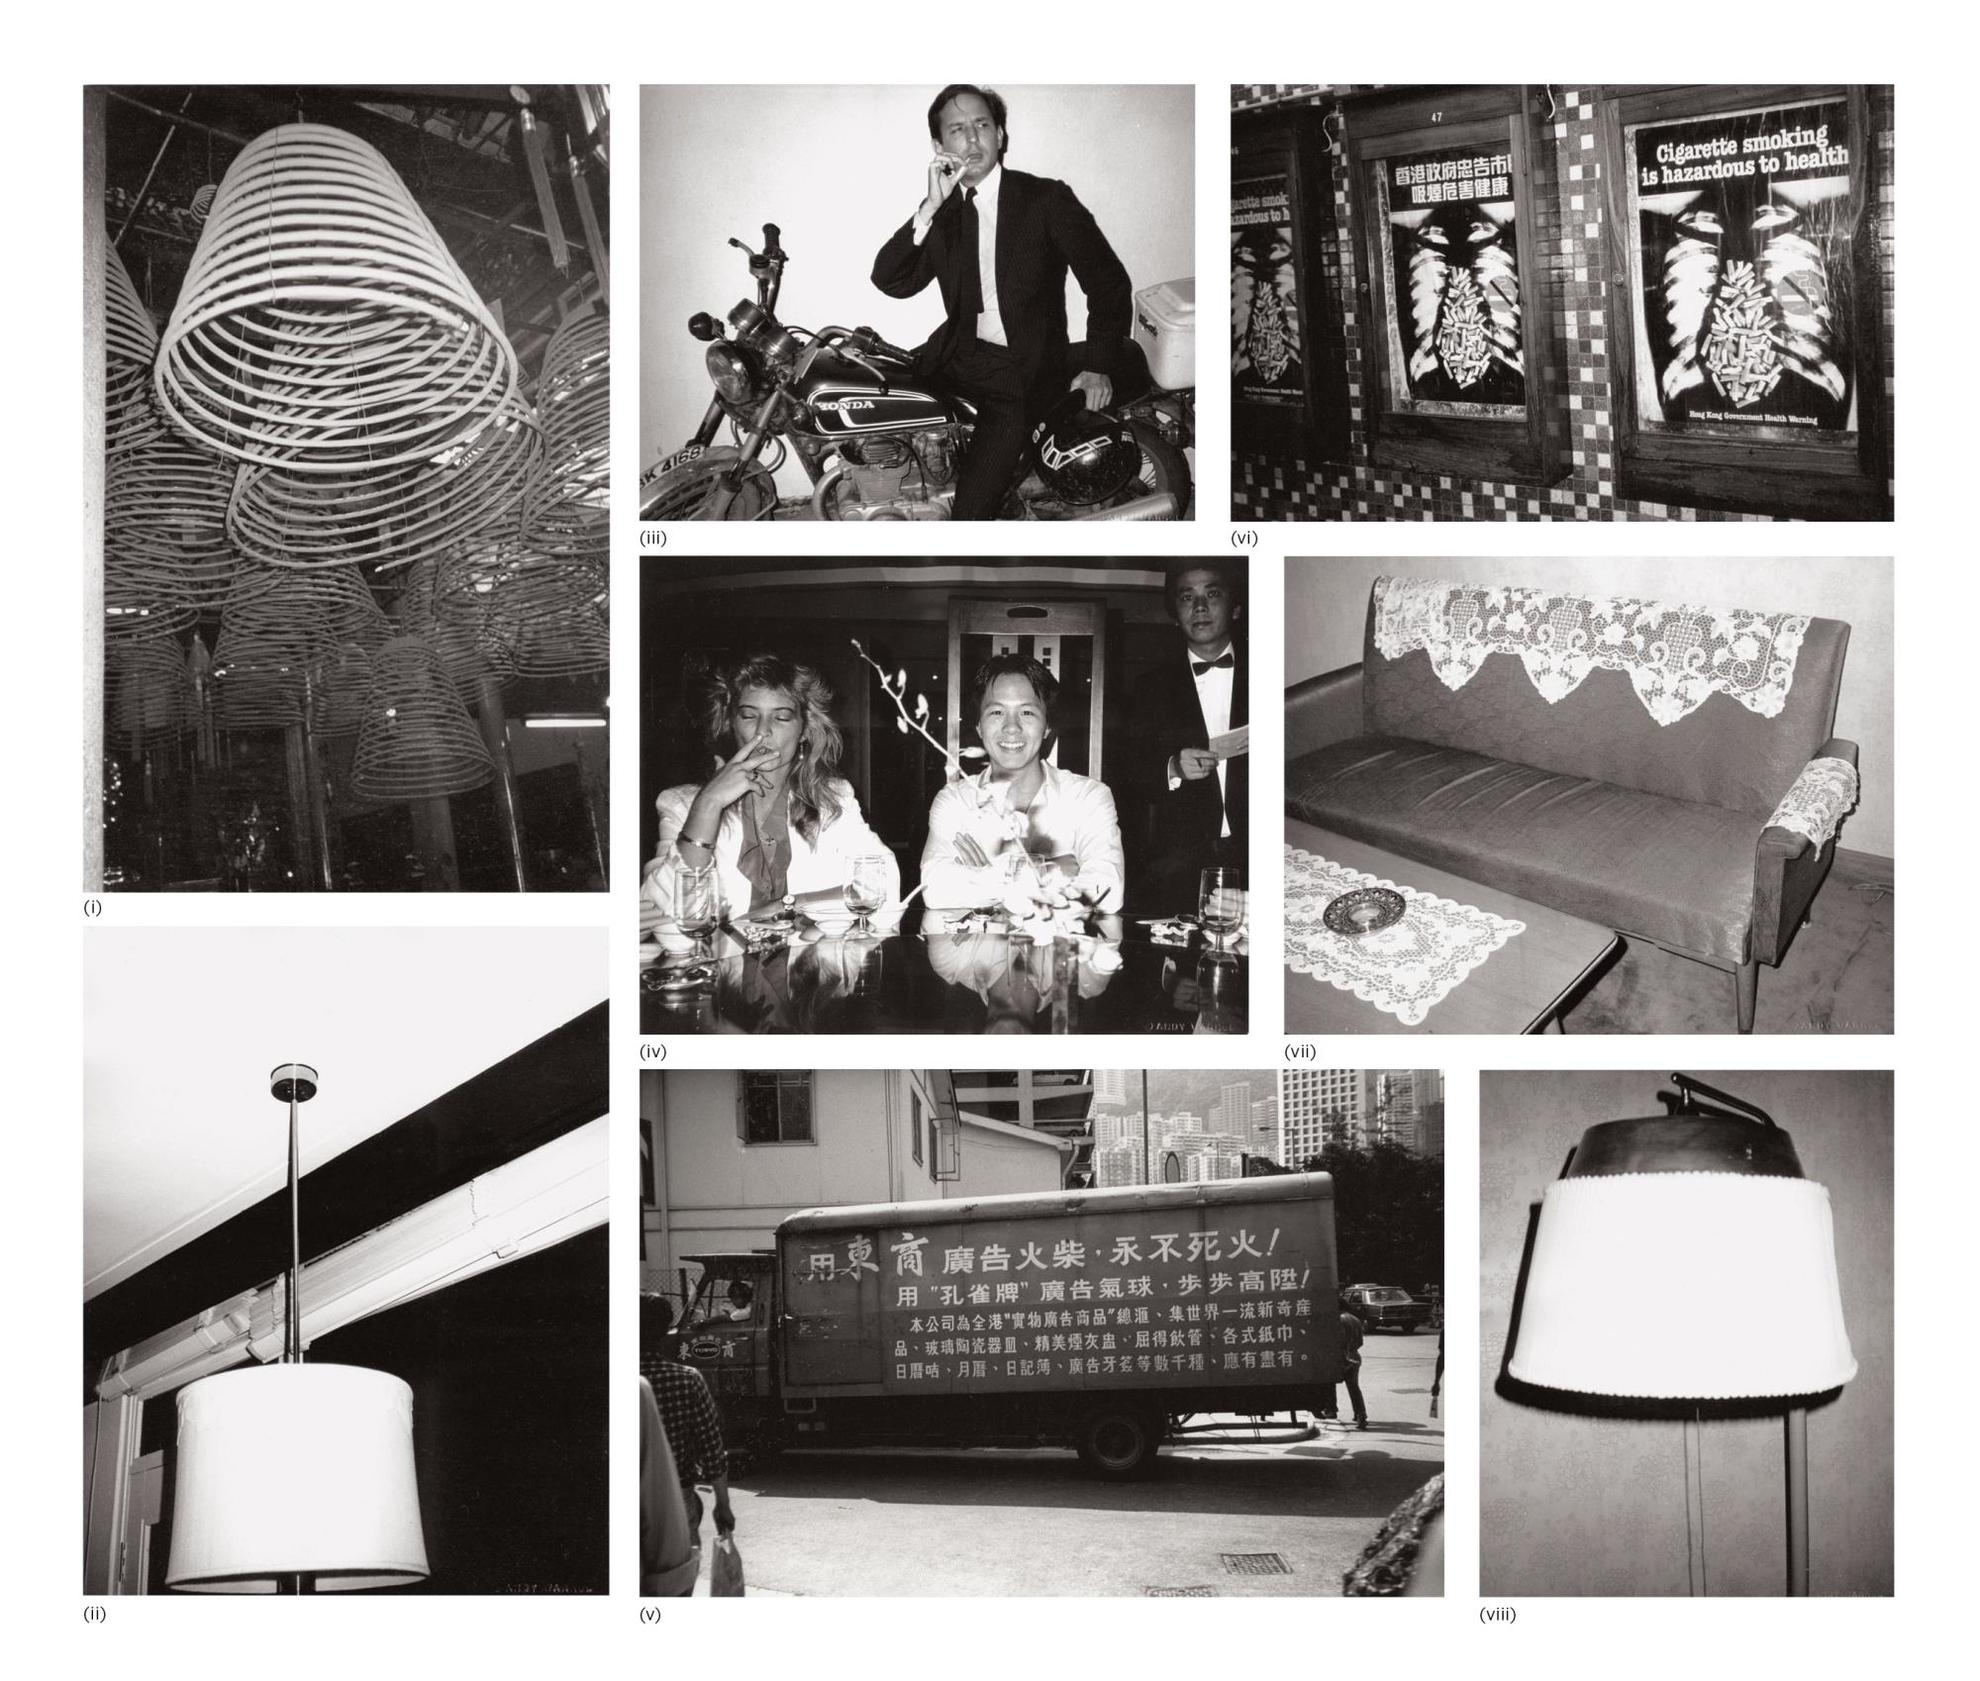 Andy Warhol-Eight Works: (I) Coiled Incense; (II) Ceiling Lamp; (III) Fred Hughes; (IV) Natasha Grenfell And Alfred Siu; (V) Hong Kong Street (Truck); (VI) Sign: Cigarette Smoking Is Hazardous To Health; (VII) Sofa And Table; (VIII) Lamp-1982